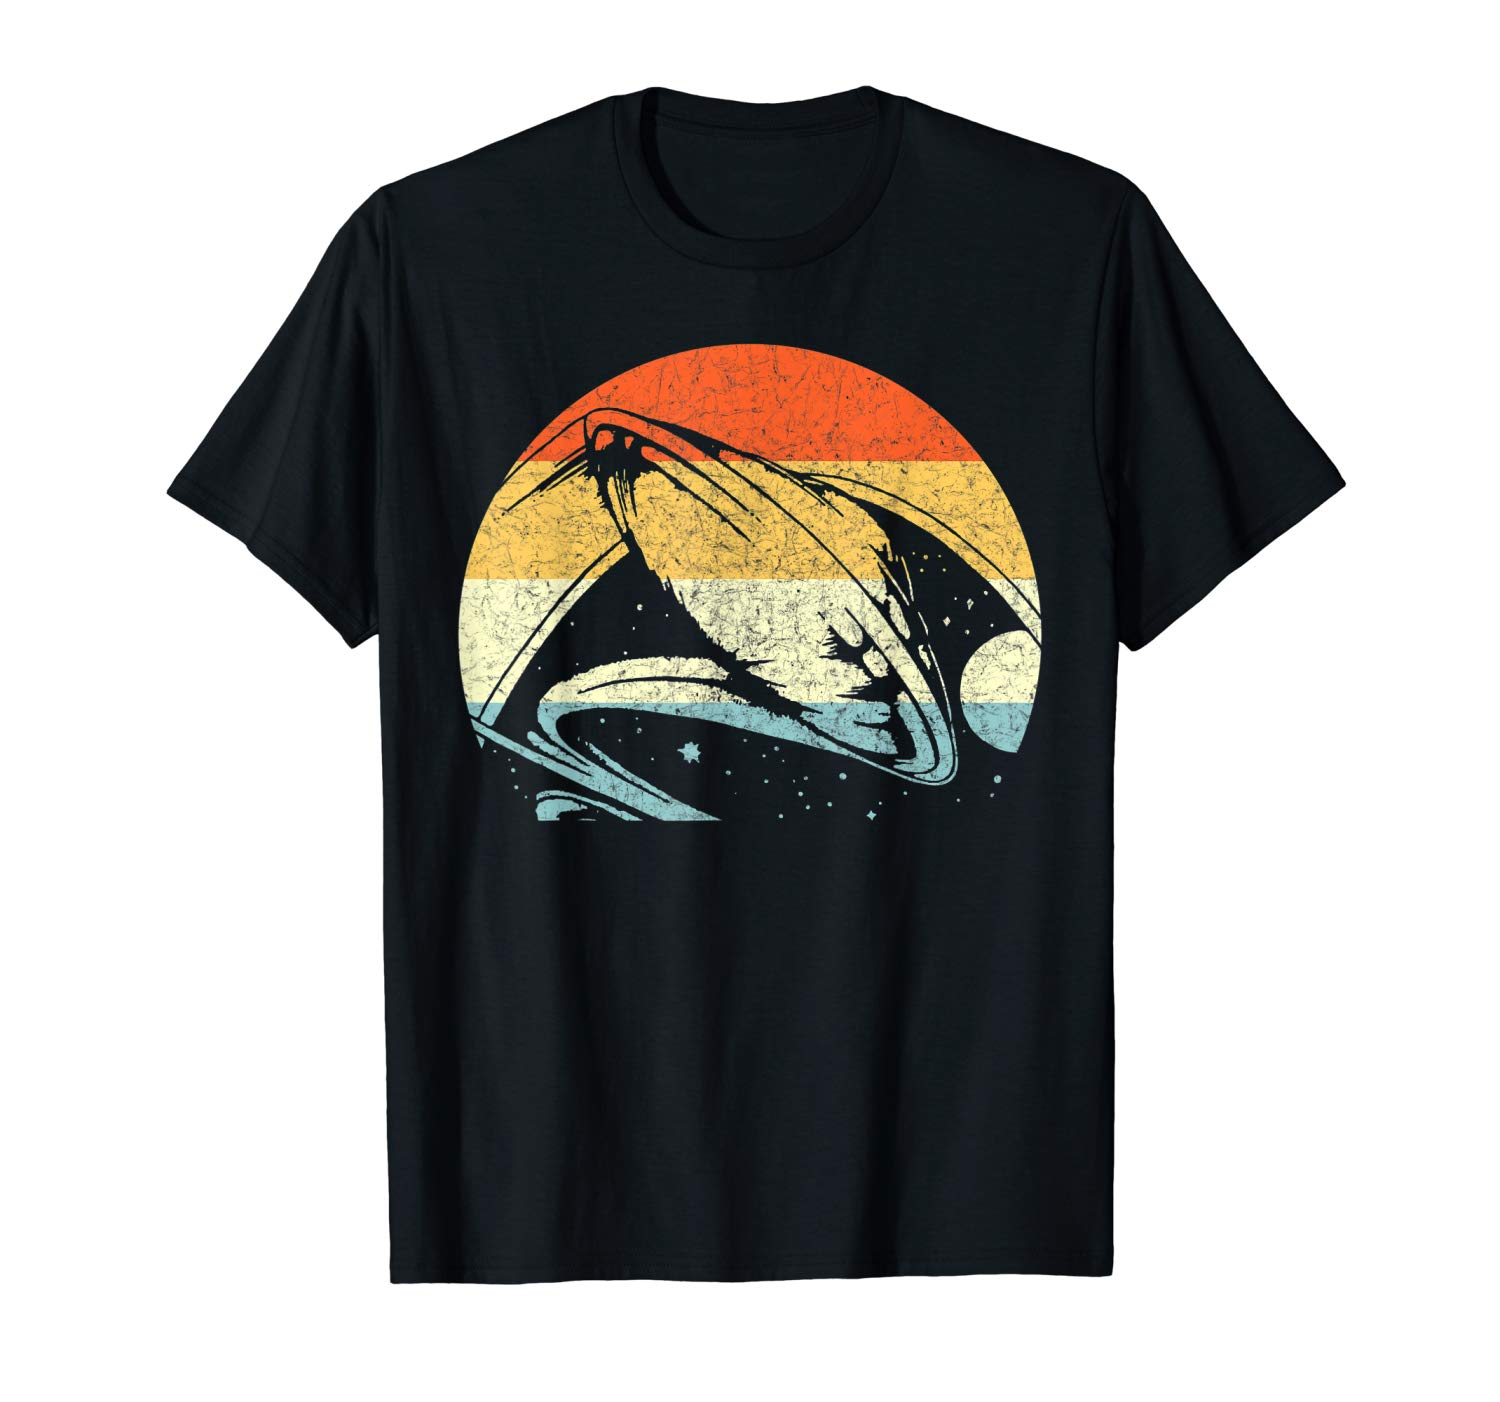 An image of a balck retro spaceship ufo lovers t-shirt from Ganja Outpost